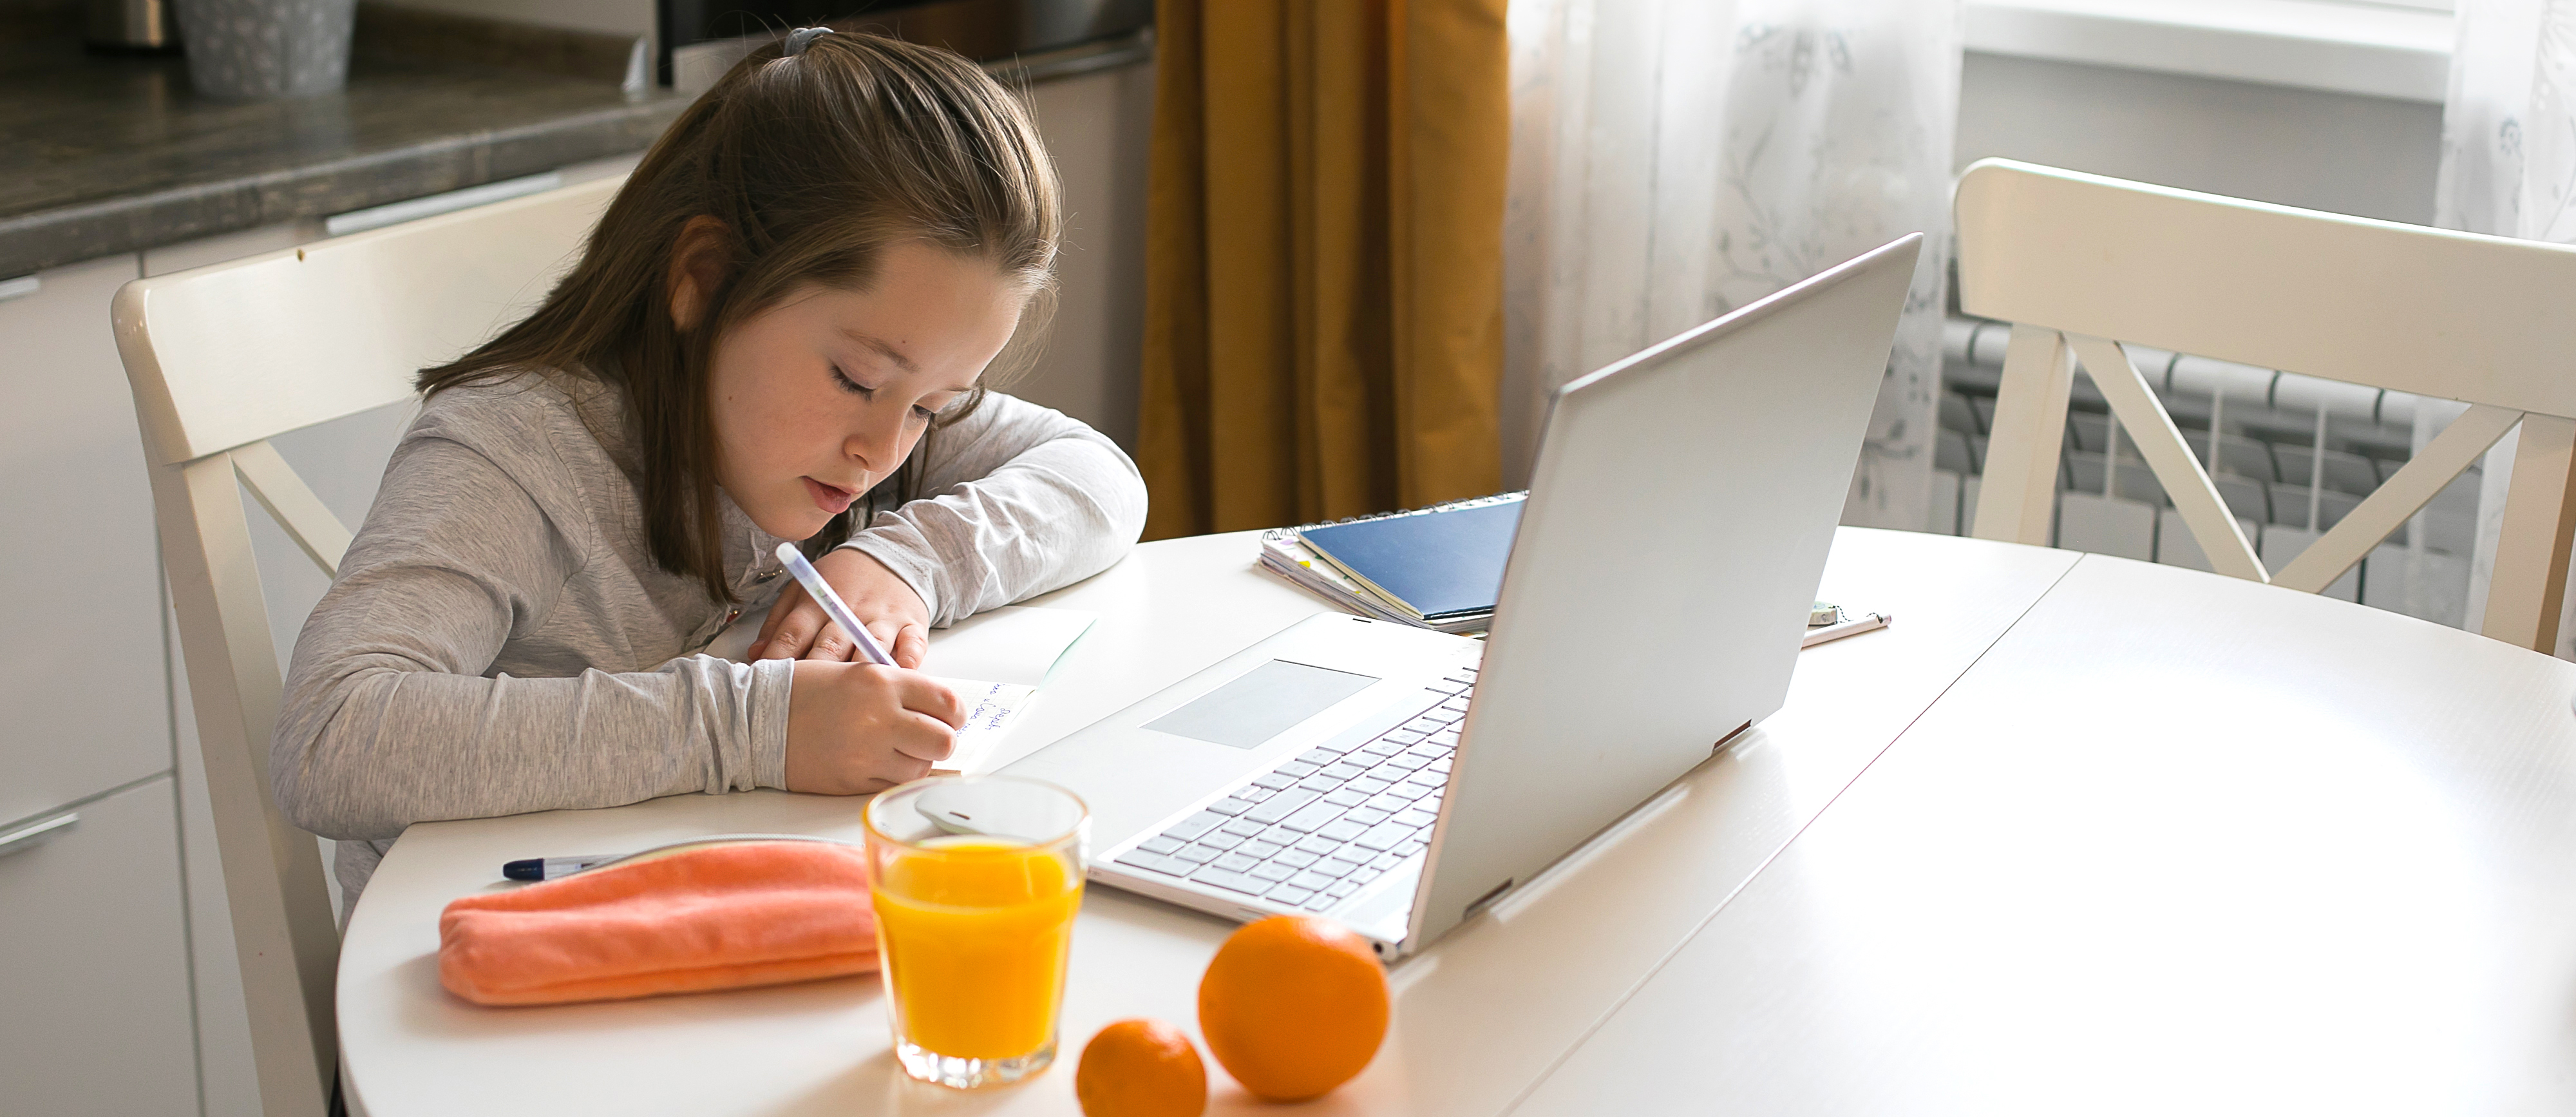 schoolgirl studying with a laptop at the kitchen table